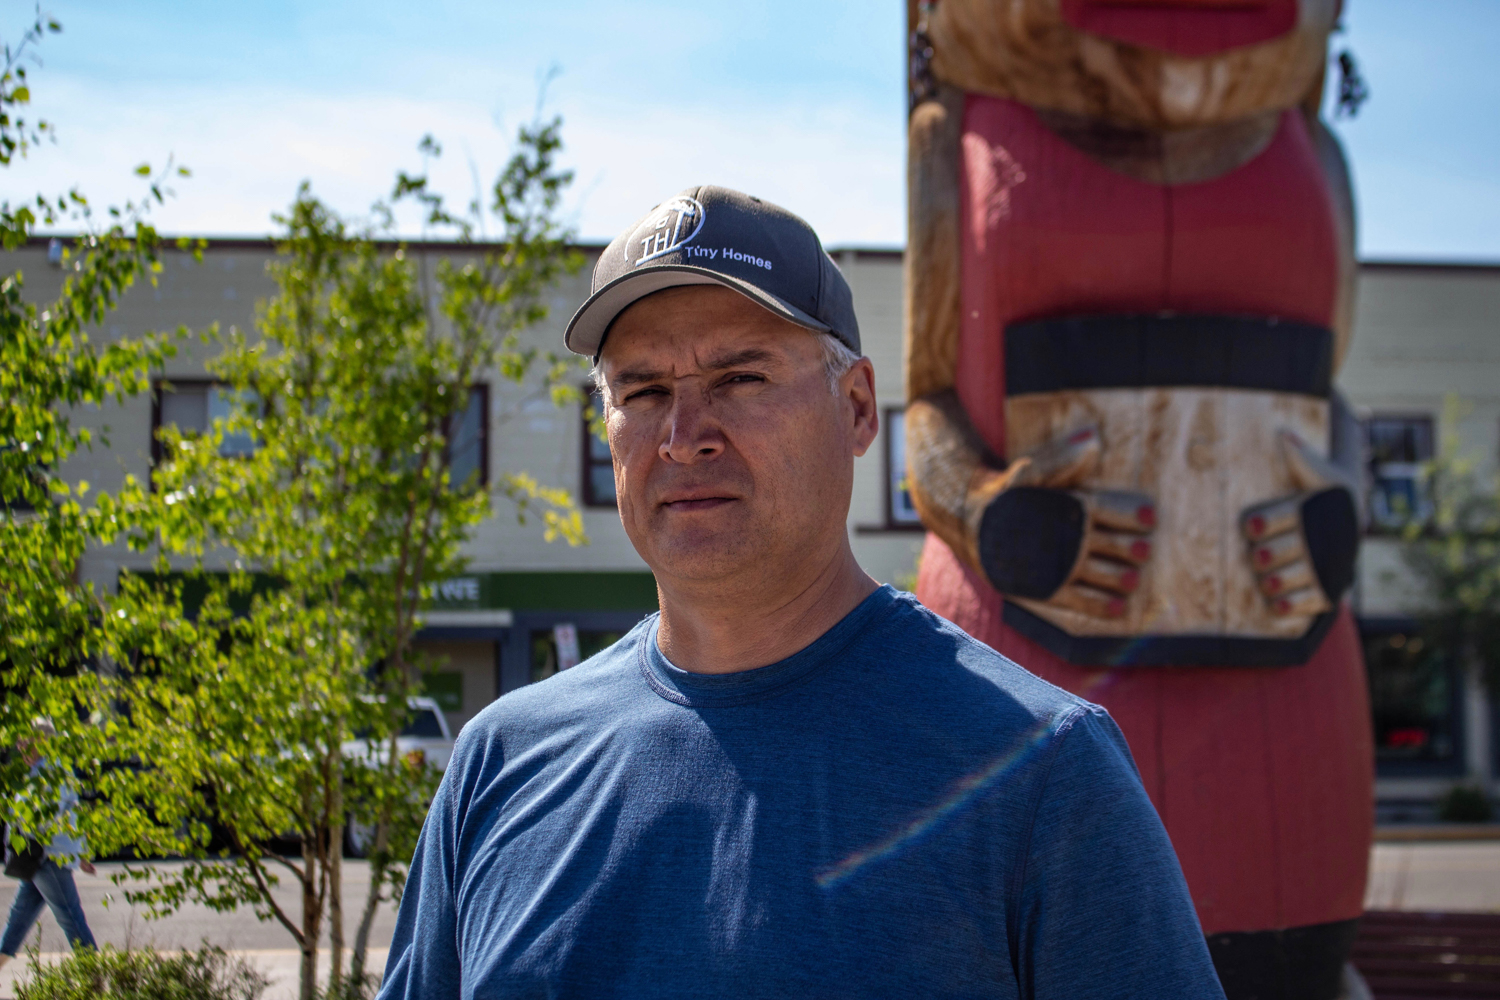 Nelson Lepine is the CEO of the management corporation that oversees the stewardship program. He says his desire to help First Nations people was inspired by the foster family that helped him by taking him in when he was young. Photo by Madeline Lines.